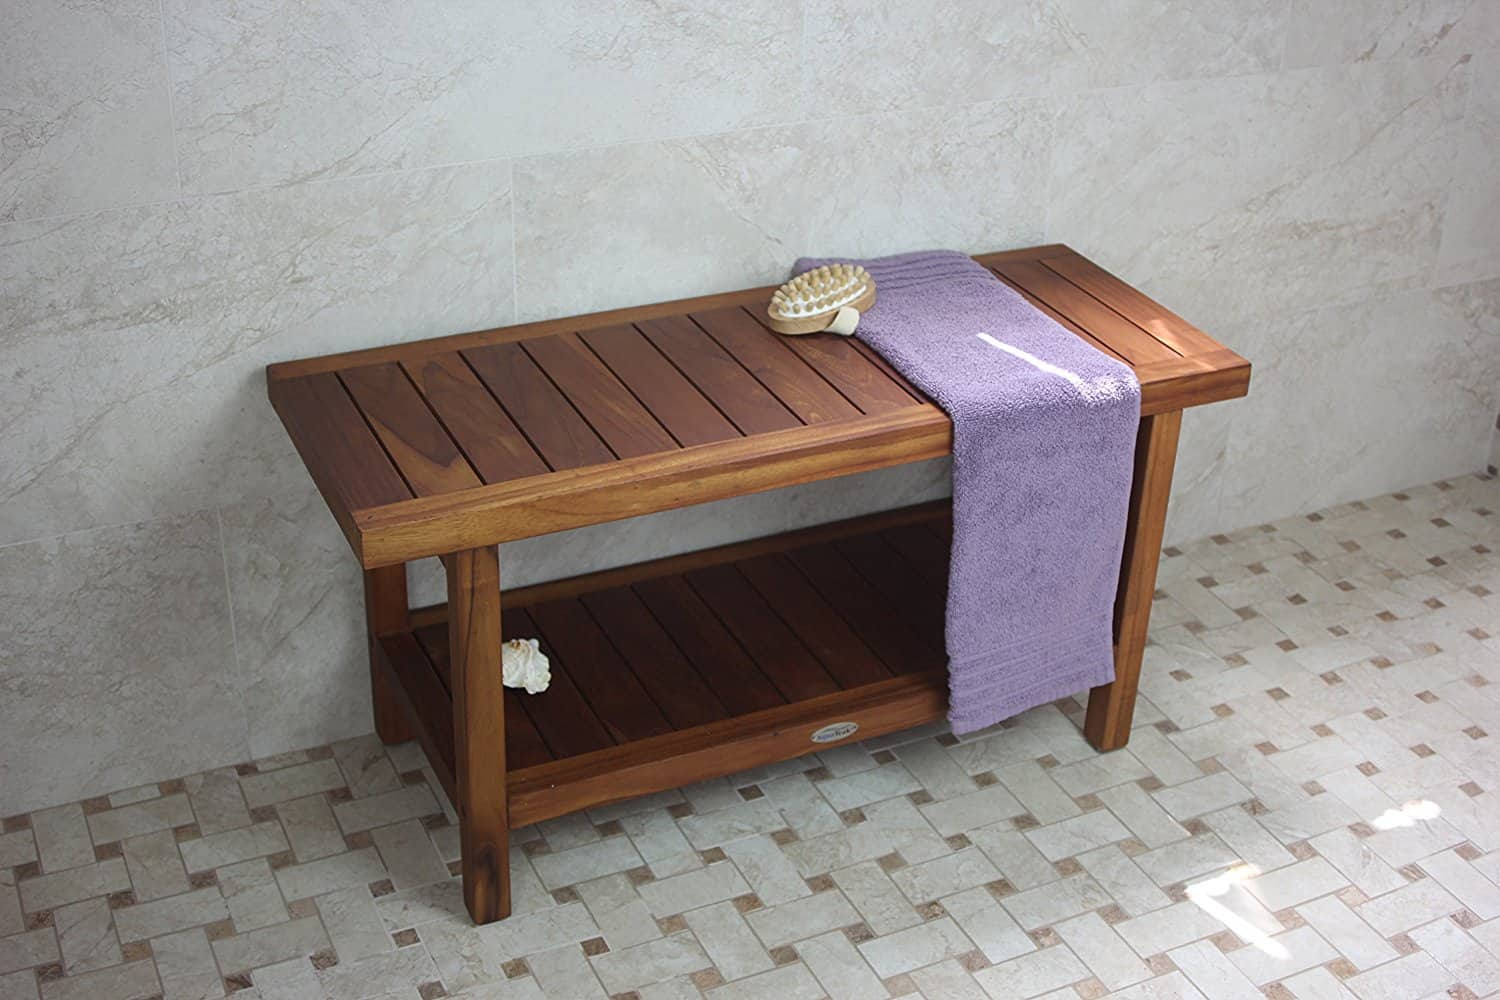 Teak Furniture for your bathroom - Teak Shower Bench| Teak Shower ...